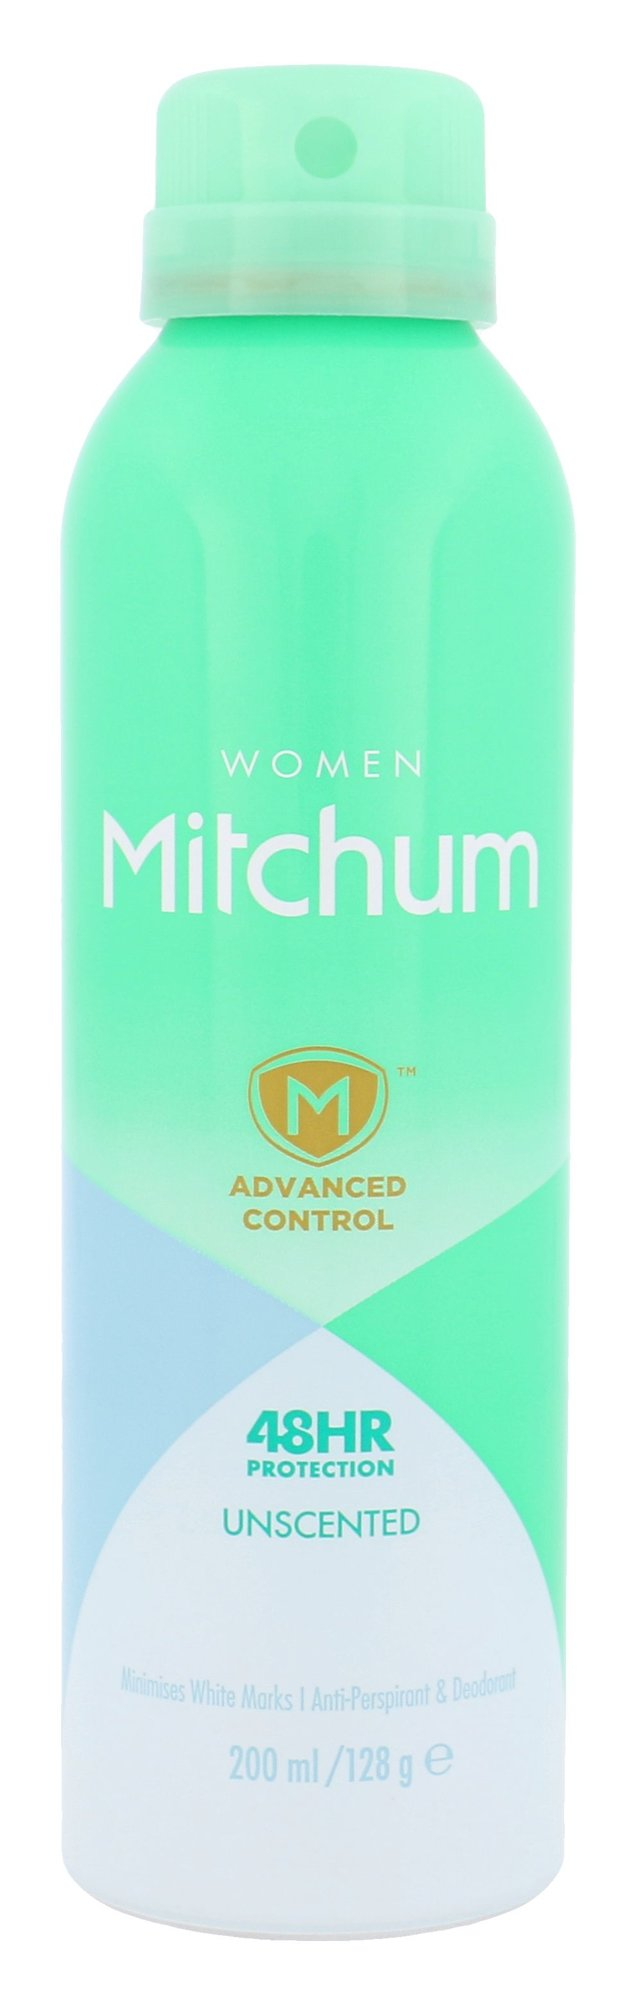 Mitchum Unscented Anti-Perspirant Deo Spray 48HR Cosmetic 200ml